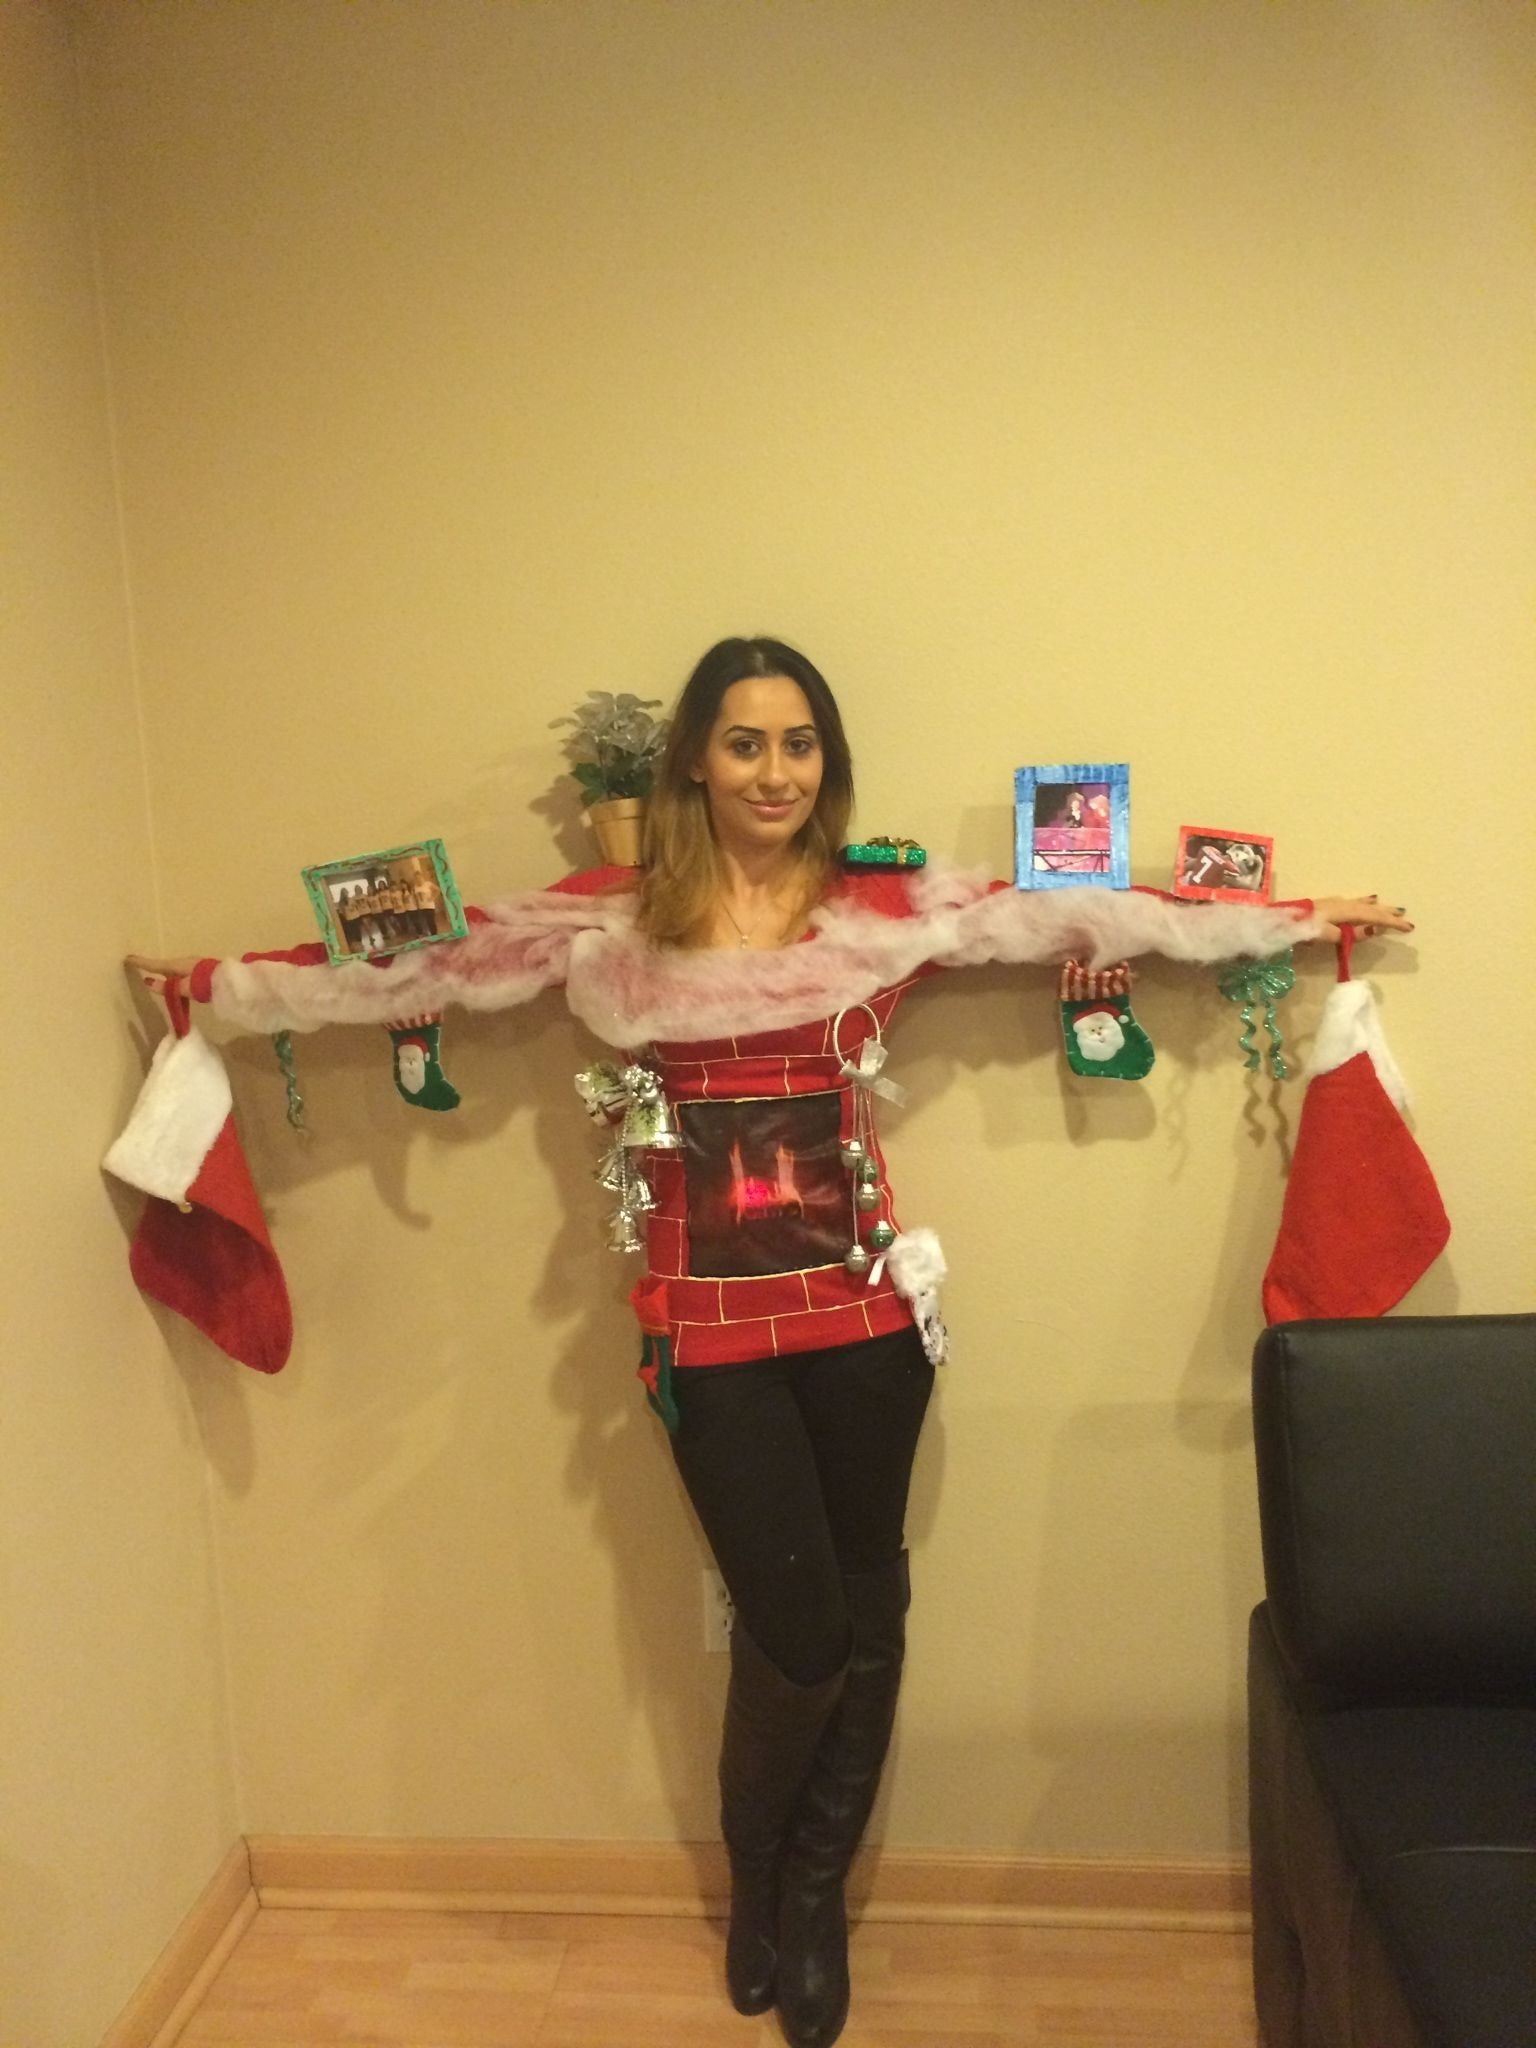 10 fantastic do it yourself ugly christmas sweater ideas 10 fantastic do it yourself ugly christmas sweater ideas 10 awesome diy ugly sweater ideas ugliest solutioingenieria Gallery